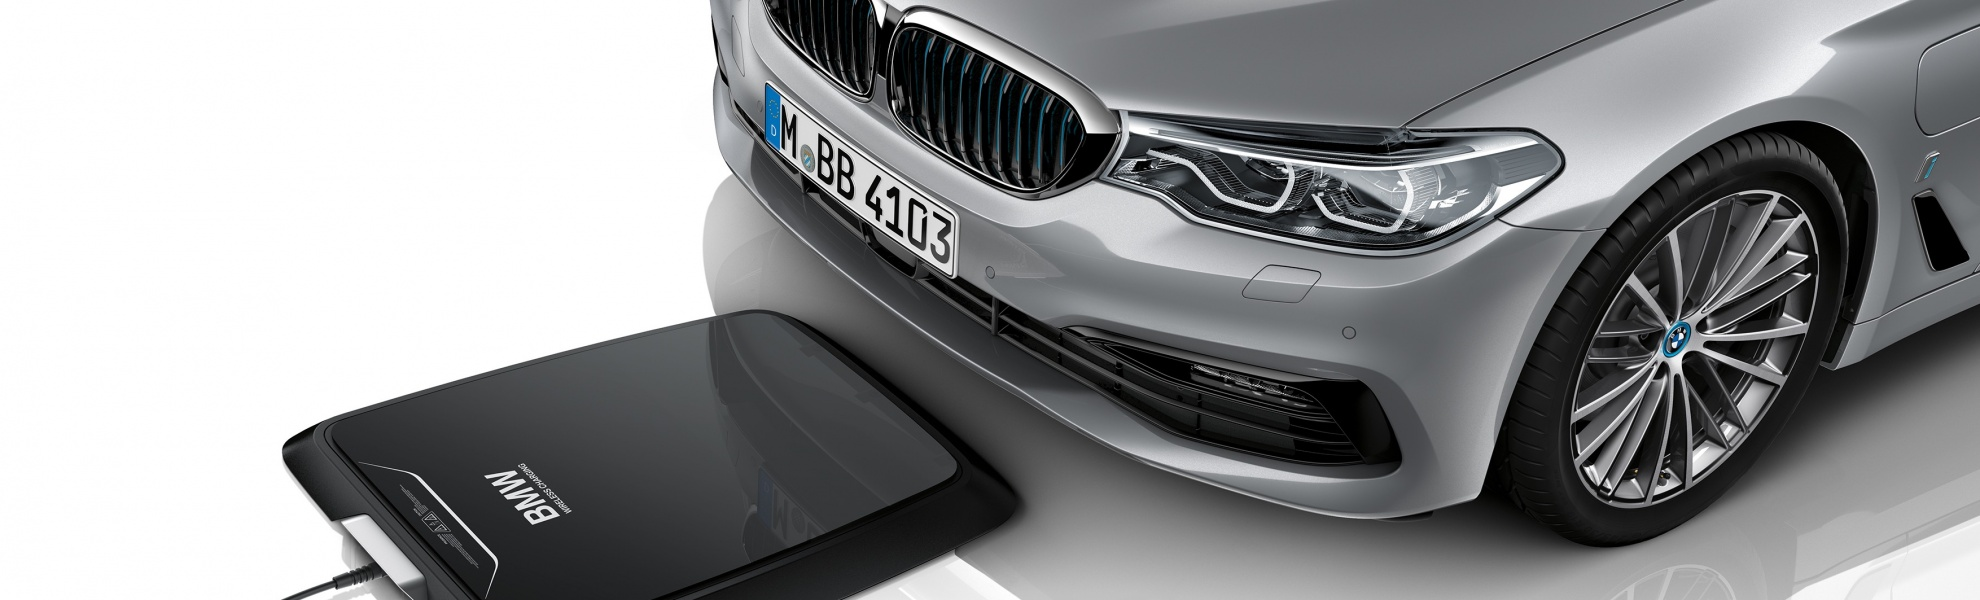 bmw-wireless-carregamento_1.jpg